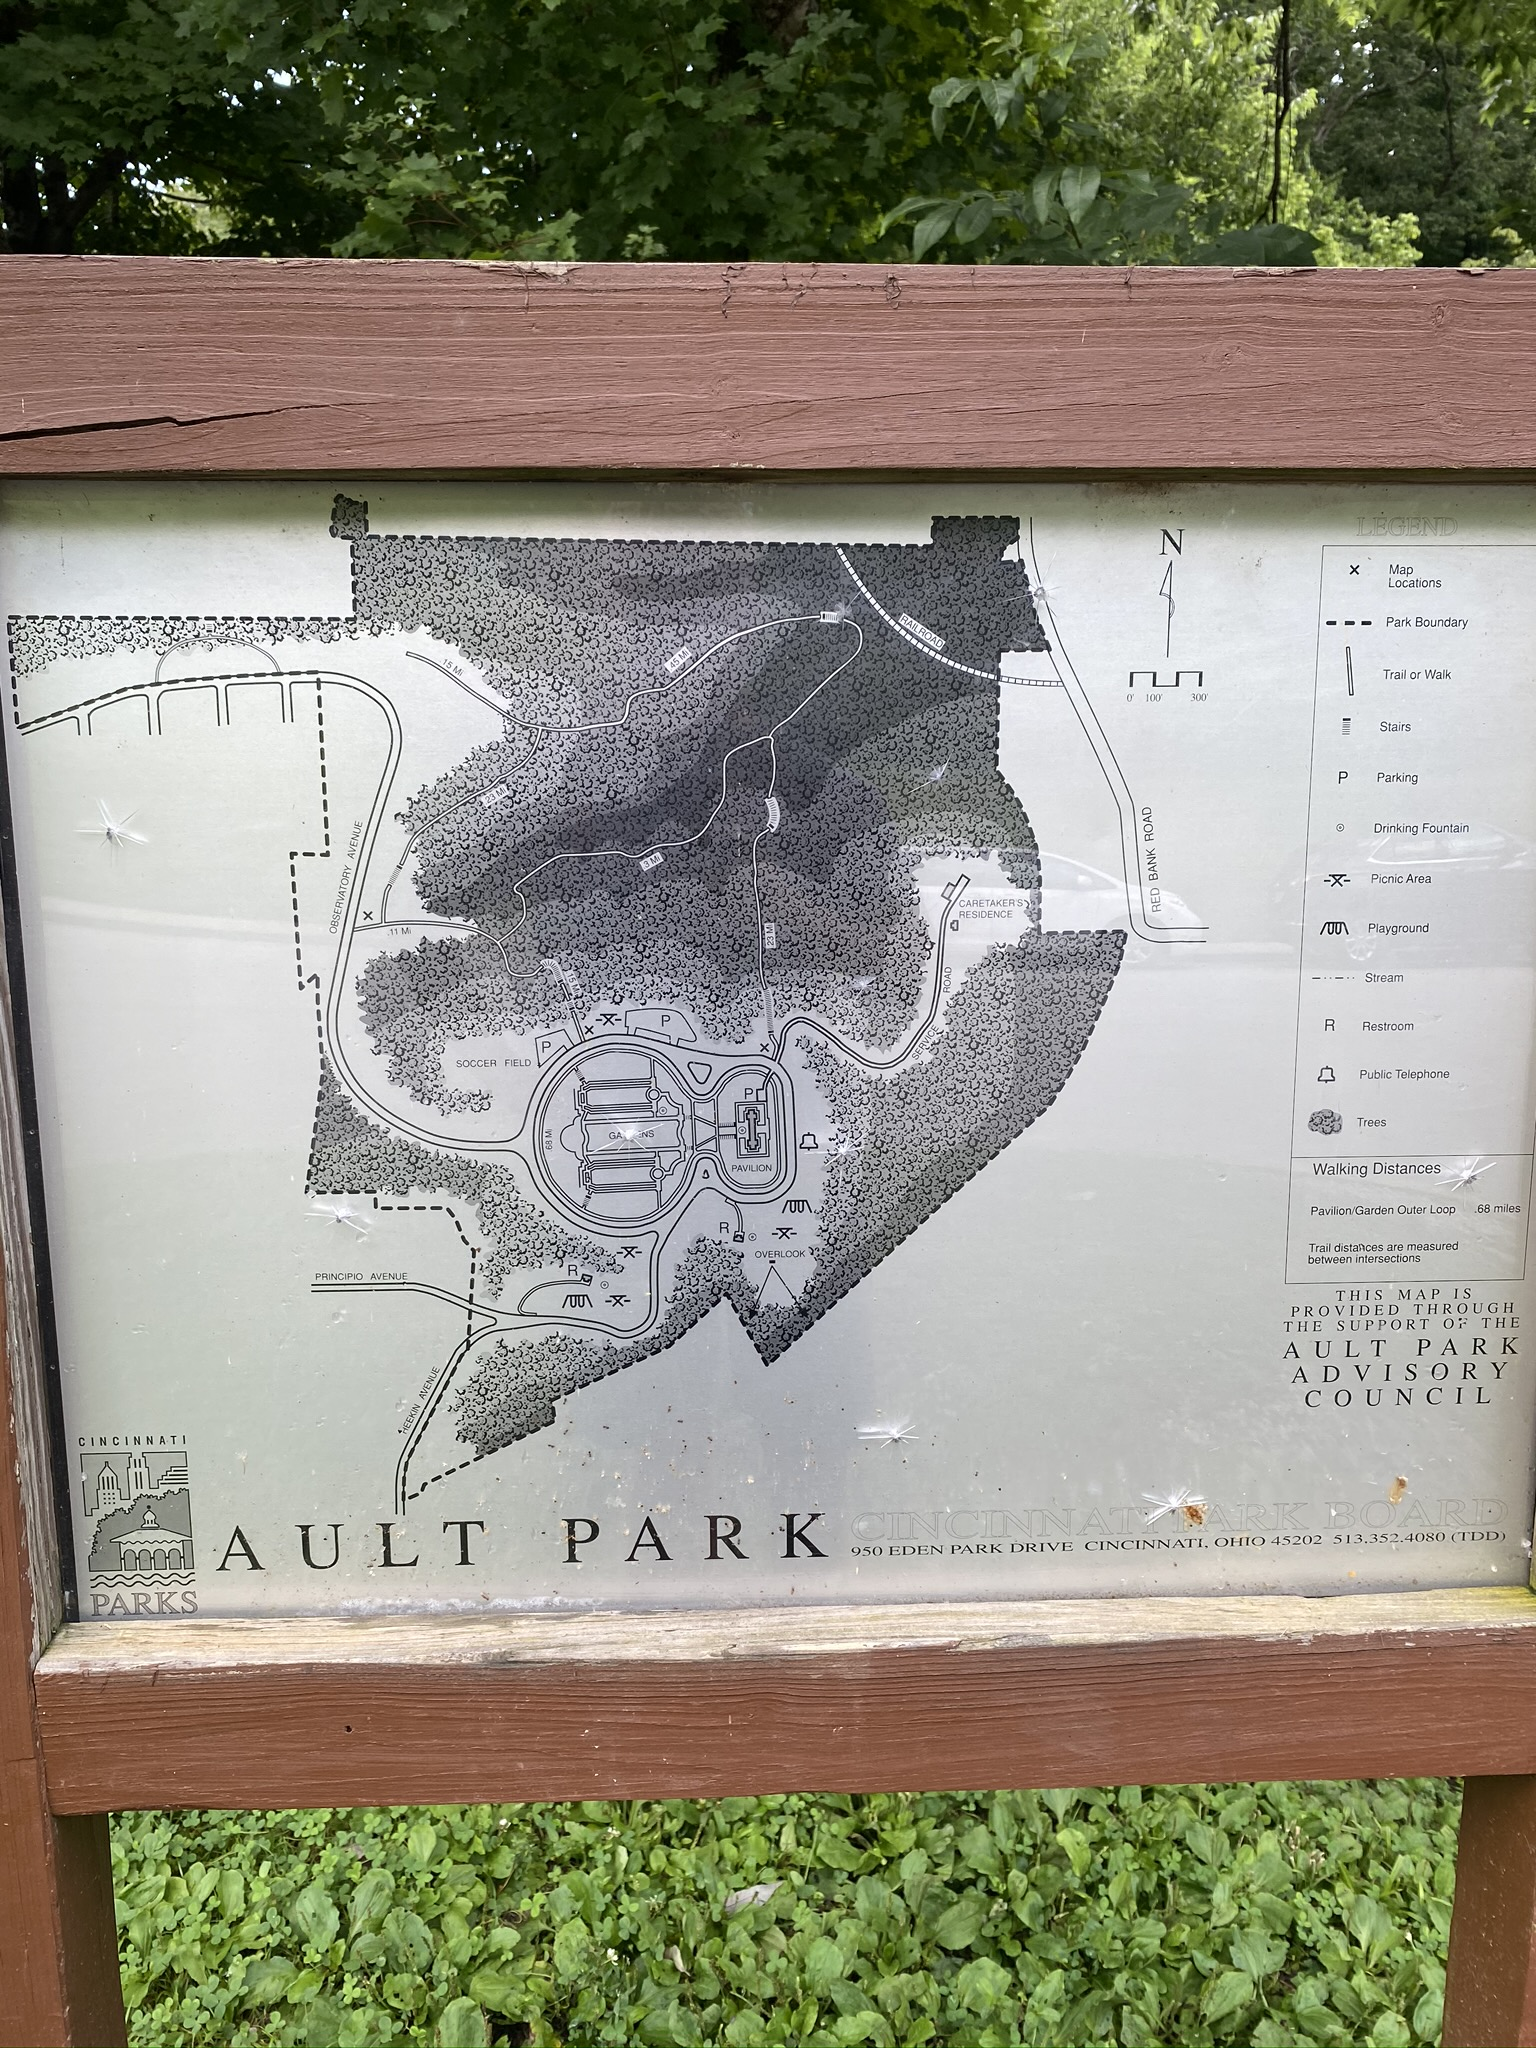 Map of Ault Park trails in Cincinnati, Ohio